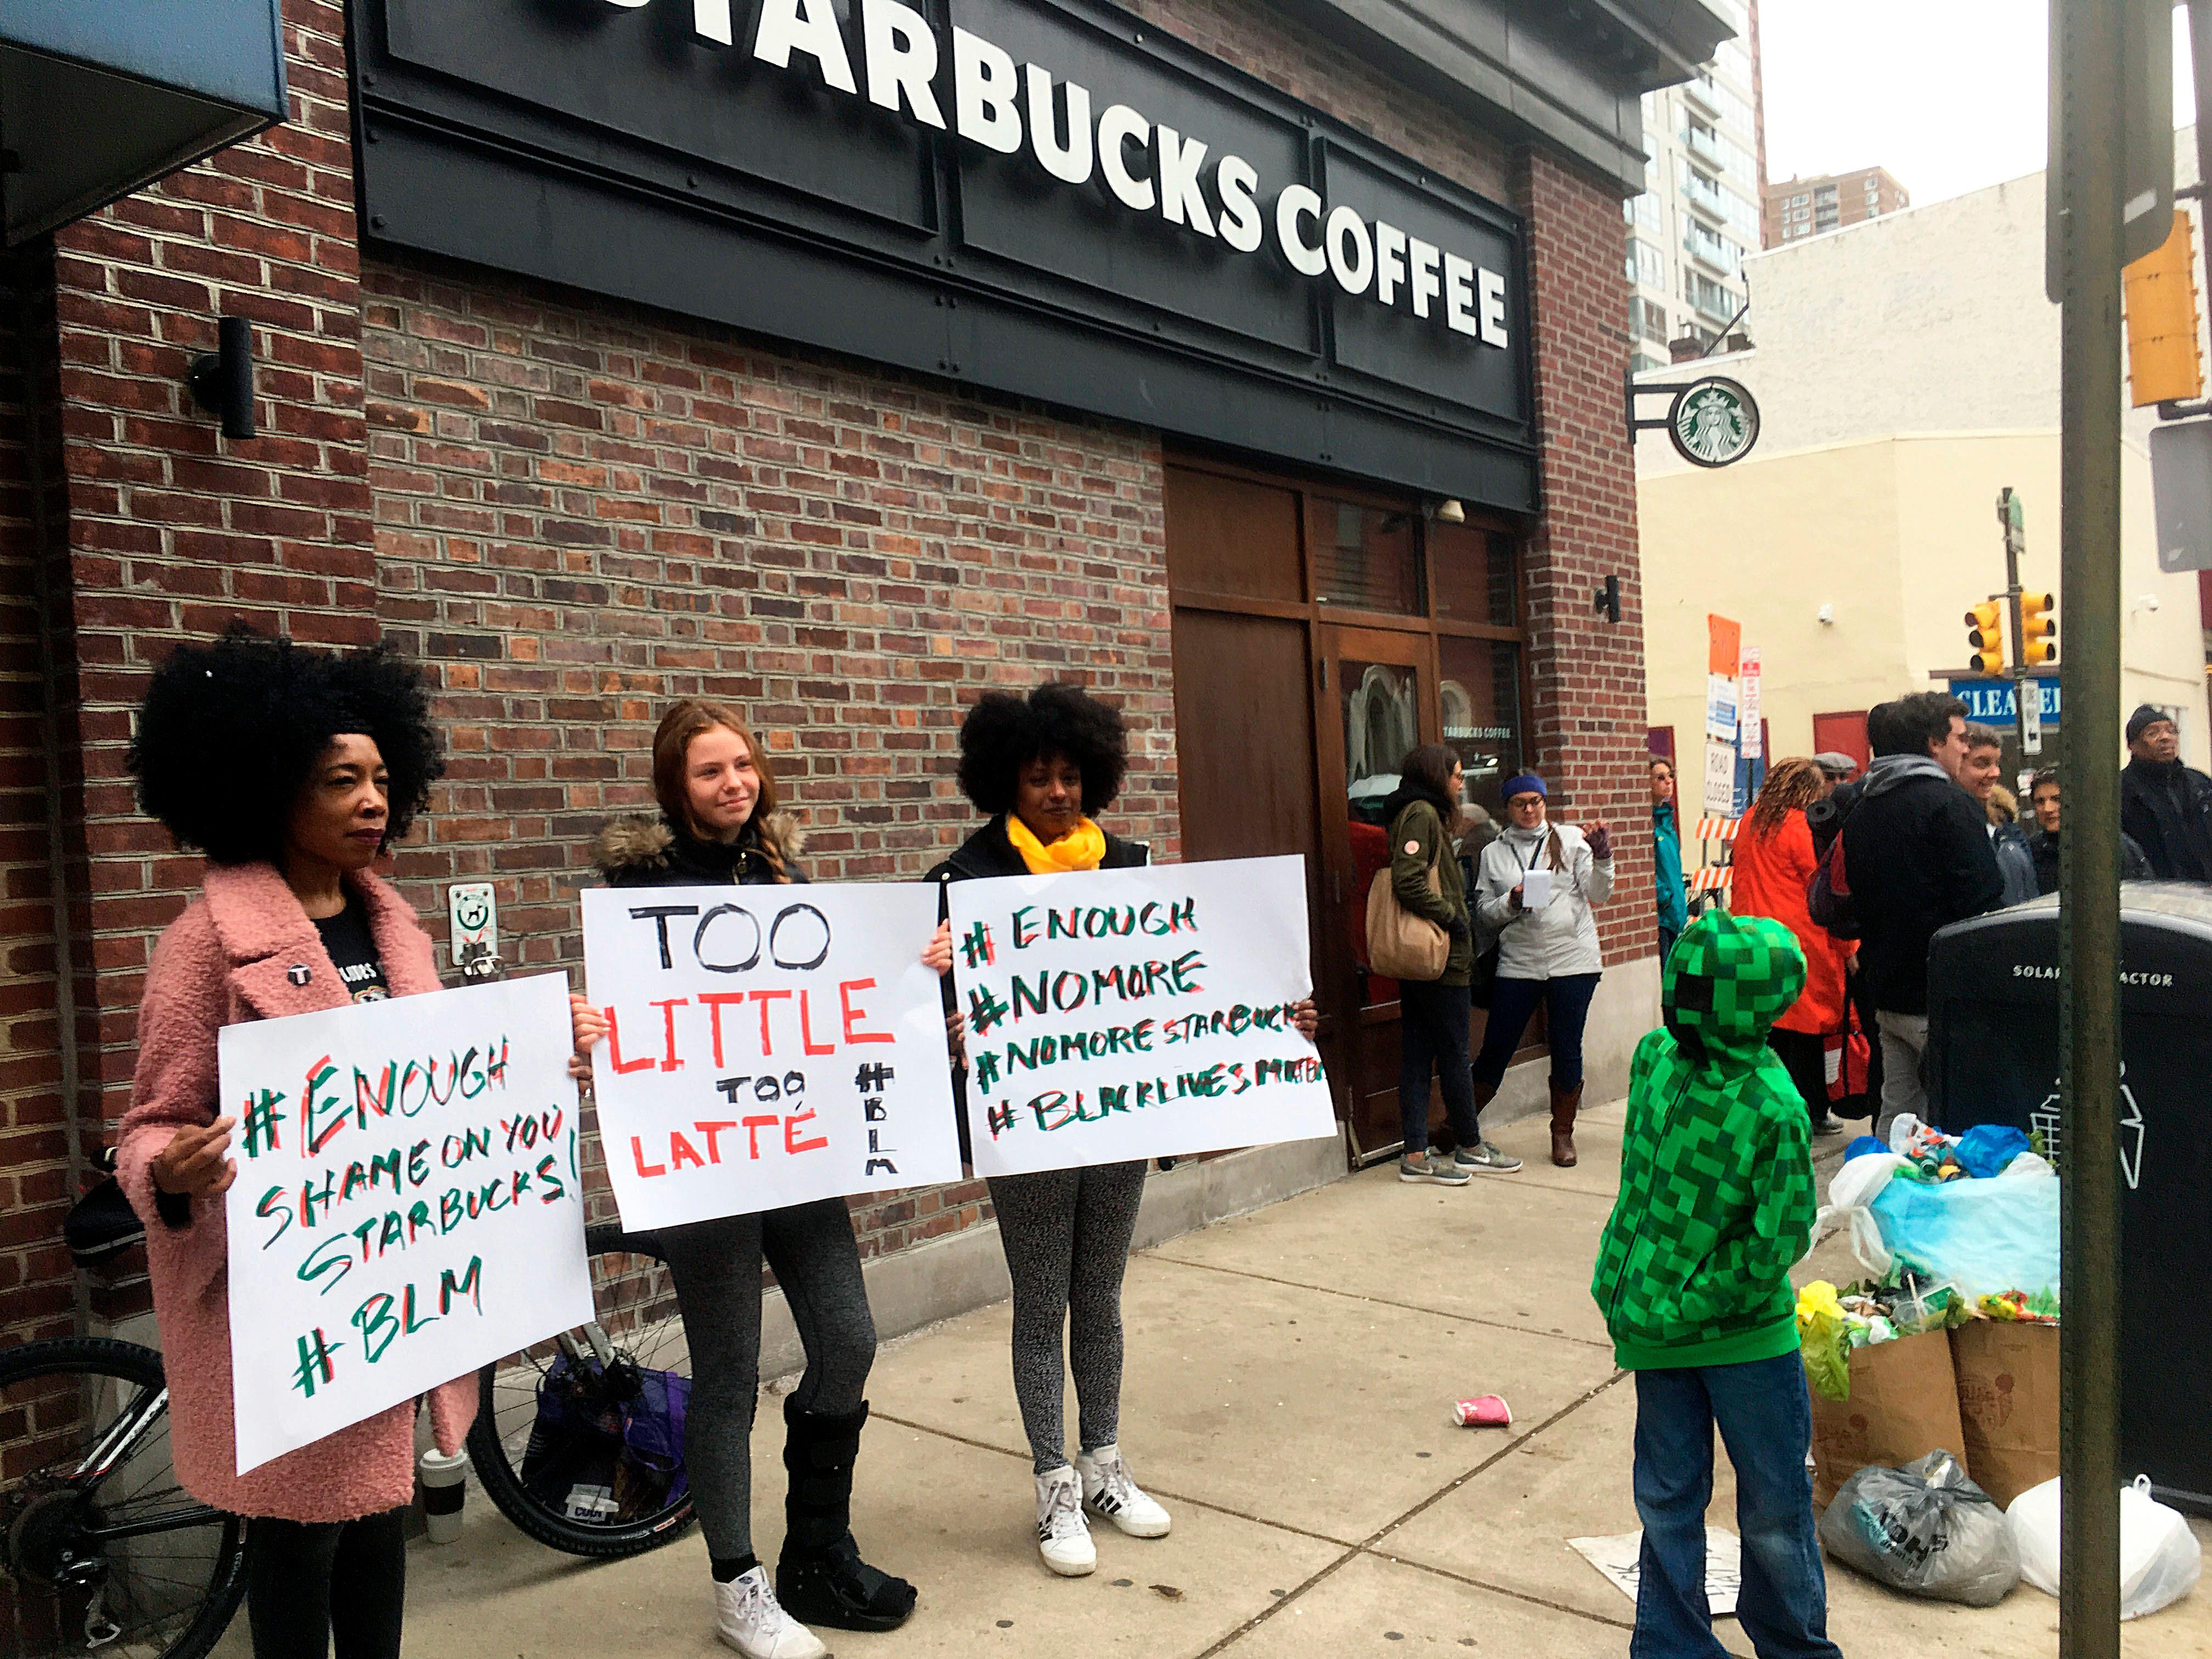 FILE – In this April 15, 2018, file photo, demonstrators protest outside the Starbucks cafe in Philadelphia where two black men were arrested three days earlier for waiting inside without ordering anything. On Tuesday, May 29, 2018, the company plans to close more than 8,000 stores nationwide to conduct anti-bias training, a move intended to show how serious the company is about living up to its now tarnished image as a neighborhood hangout where all are welcome. (AP Photo/Ron Todt, File)